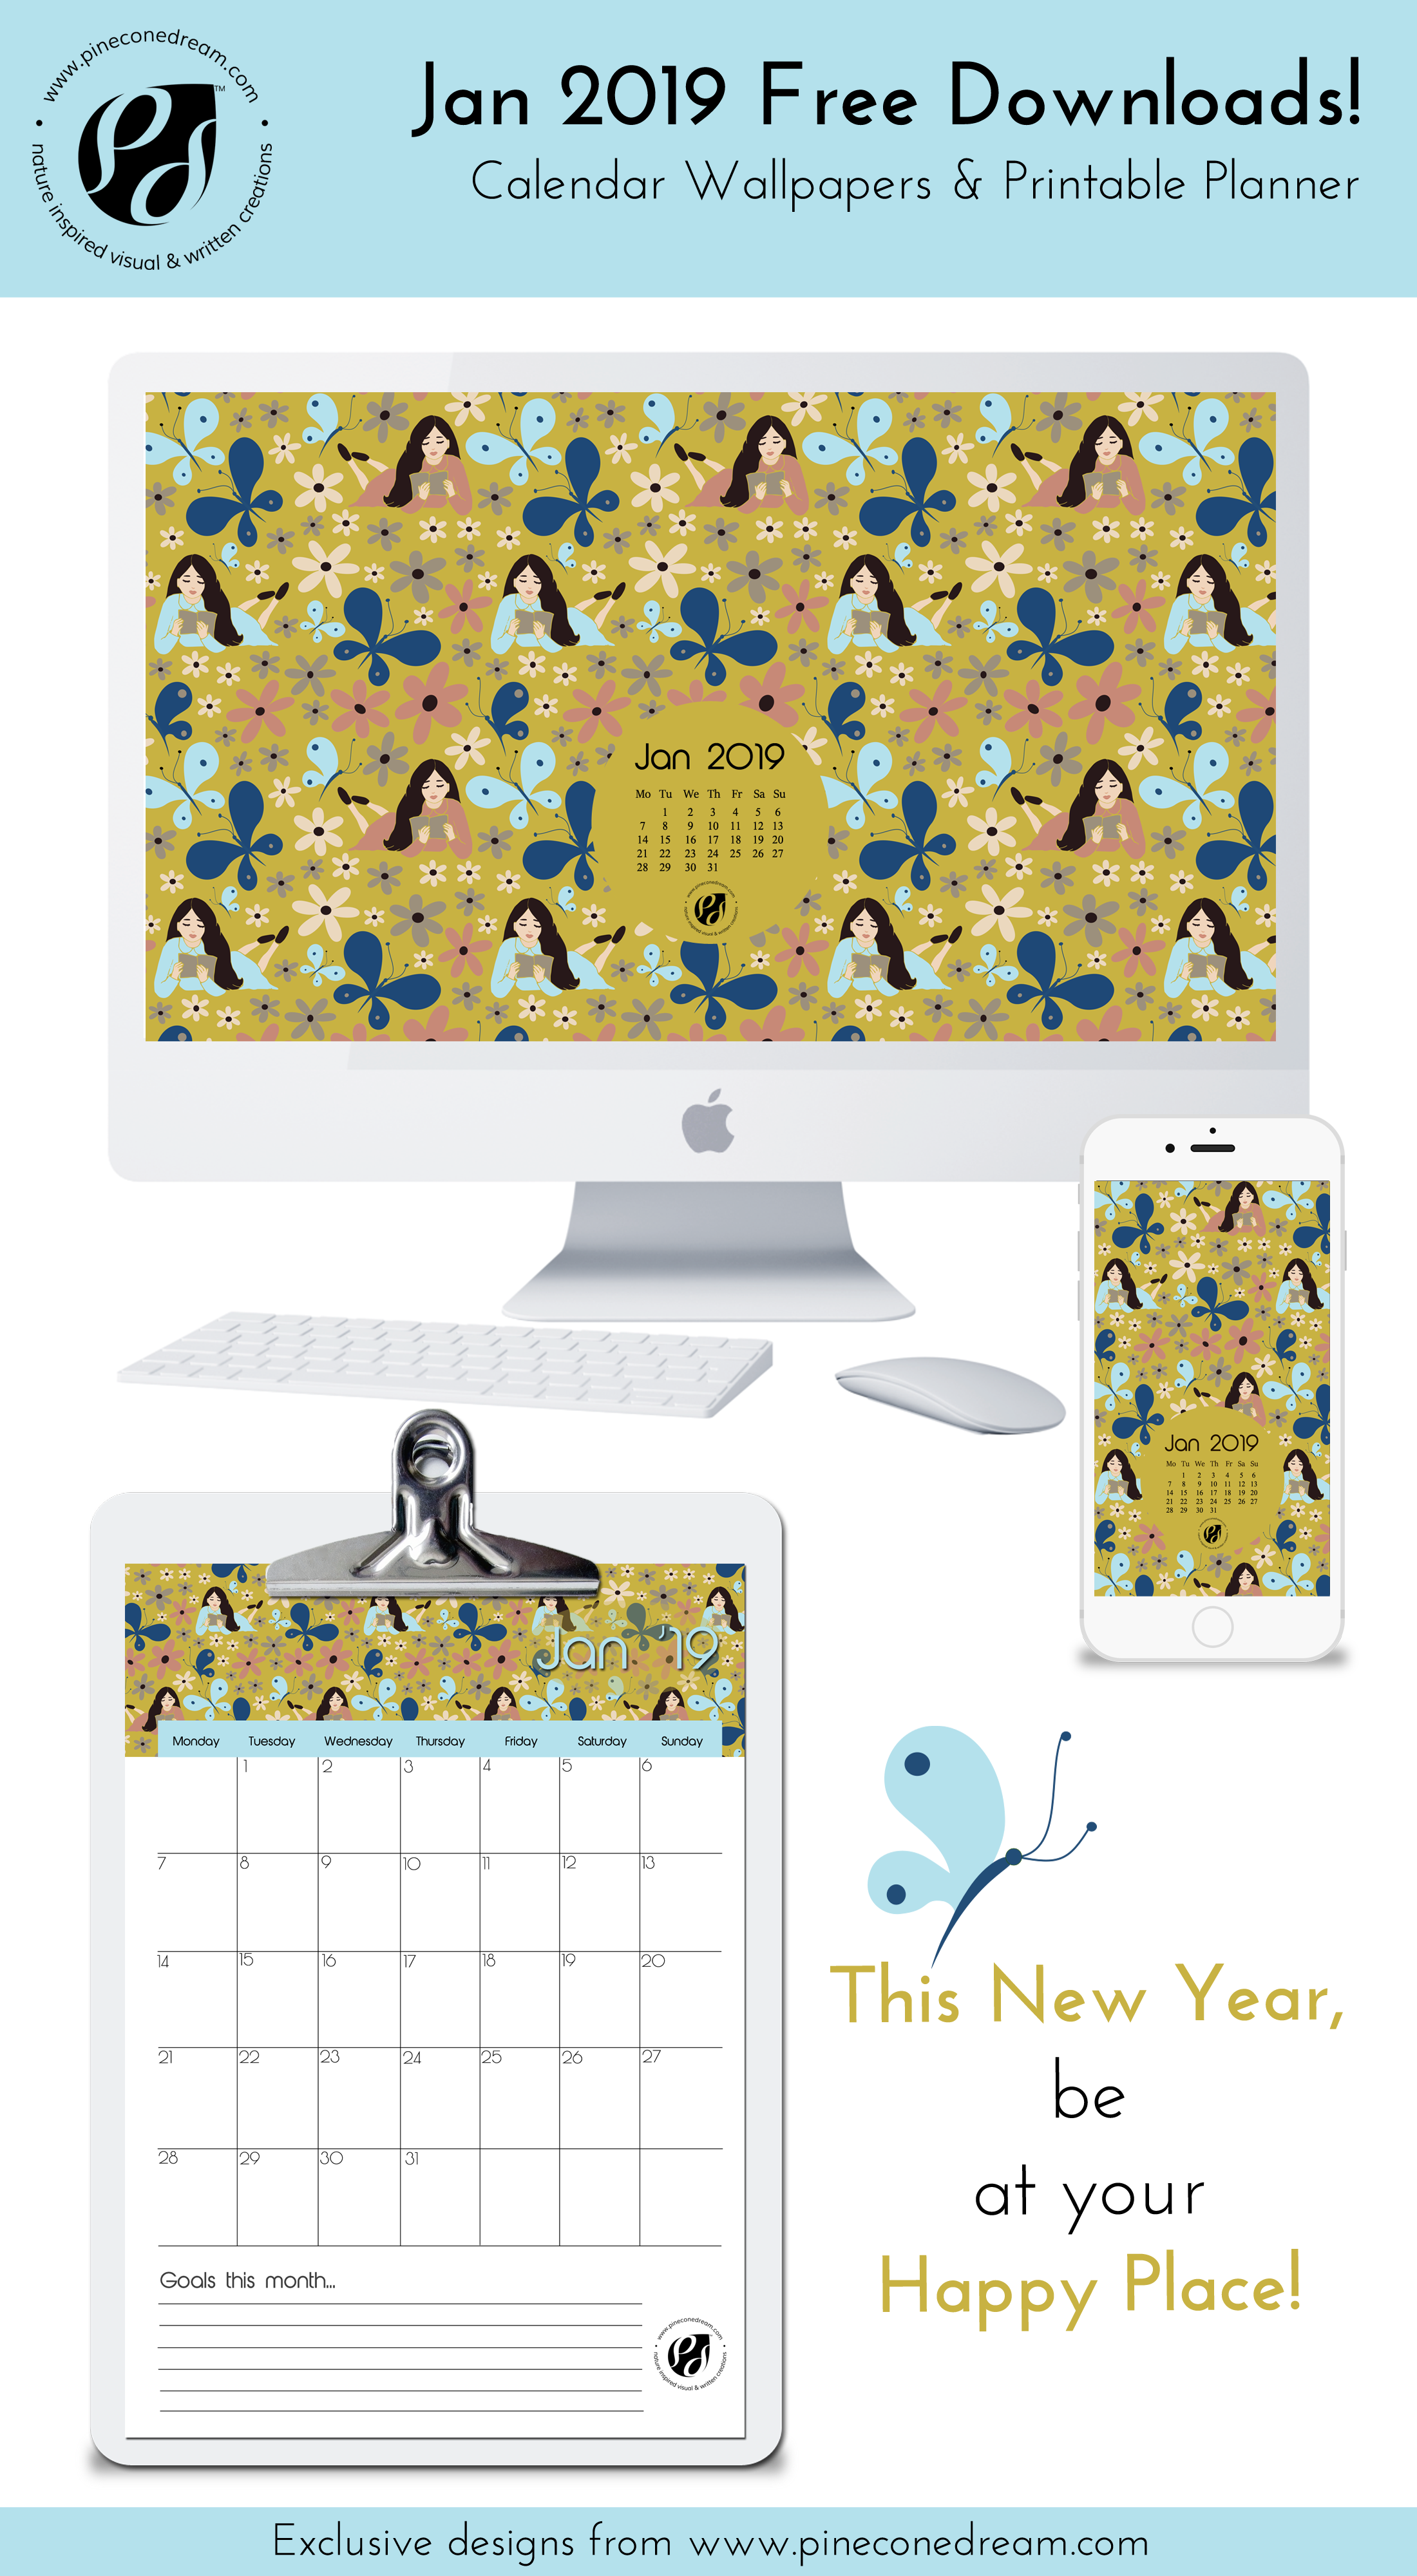 Jan 2019 free wallpapers, calendar, planner illustrated